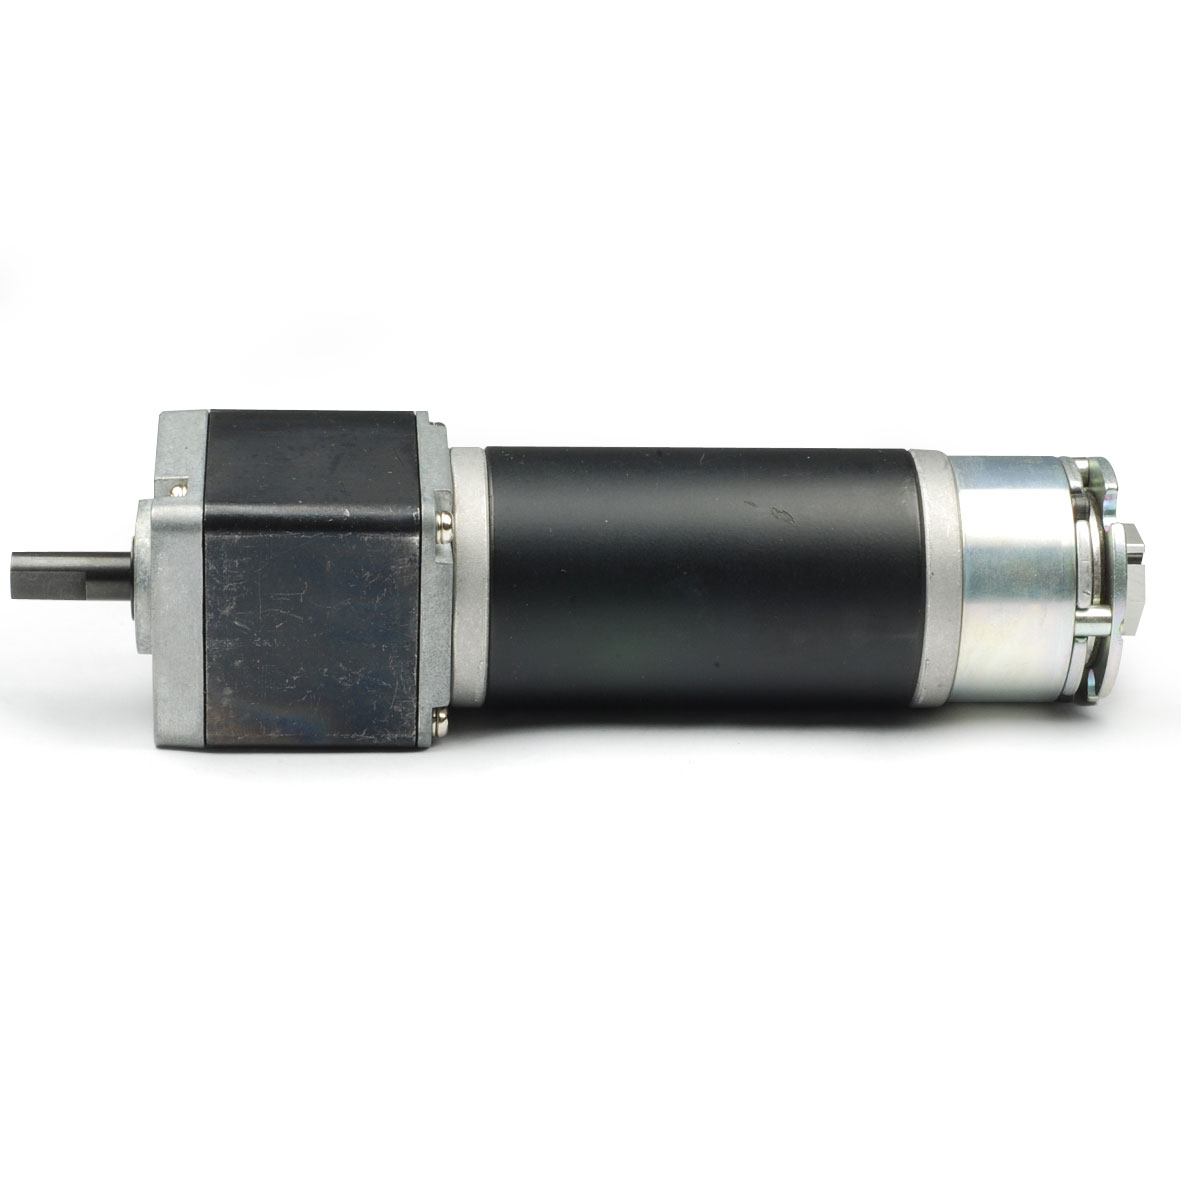 42.5mm DC Brushed Motor With Planetary Gear Box - 42.5mm high toque brushed gear motor